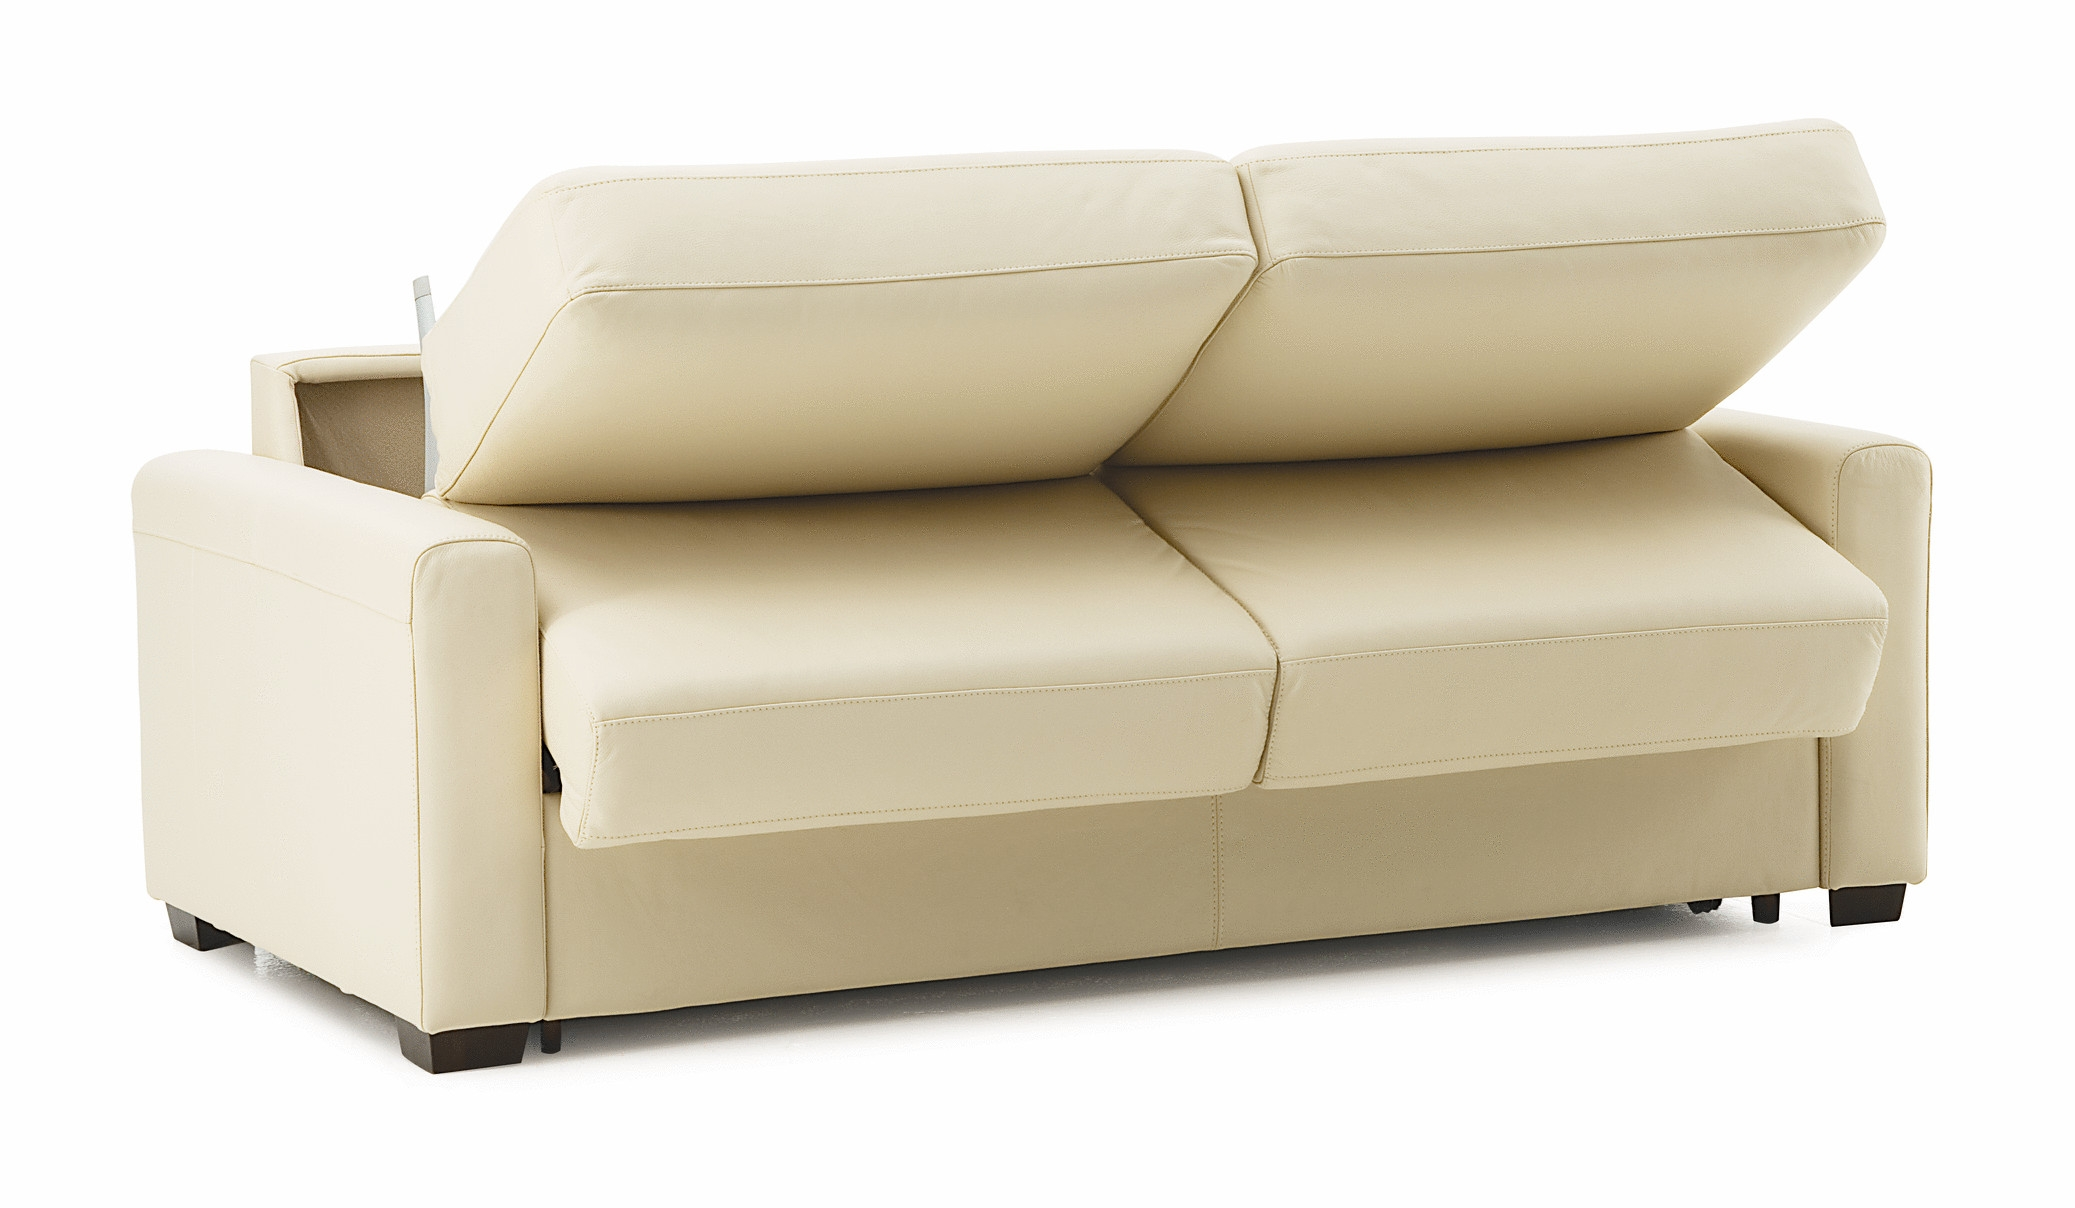 Balkarp Sofa Bed | Ikea Sofa Beds | Sleeper Sofa with Air Mattress